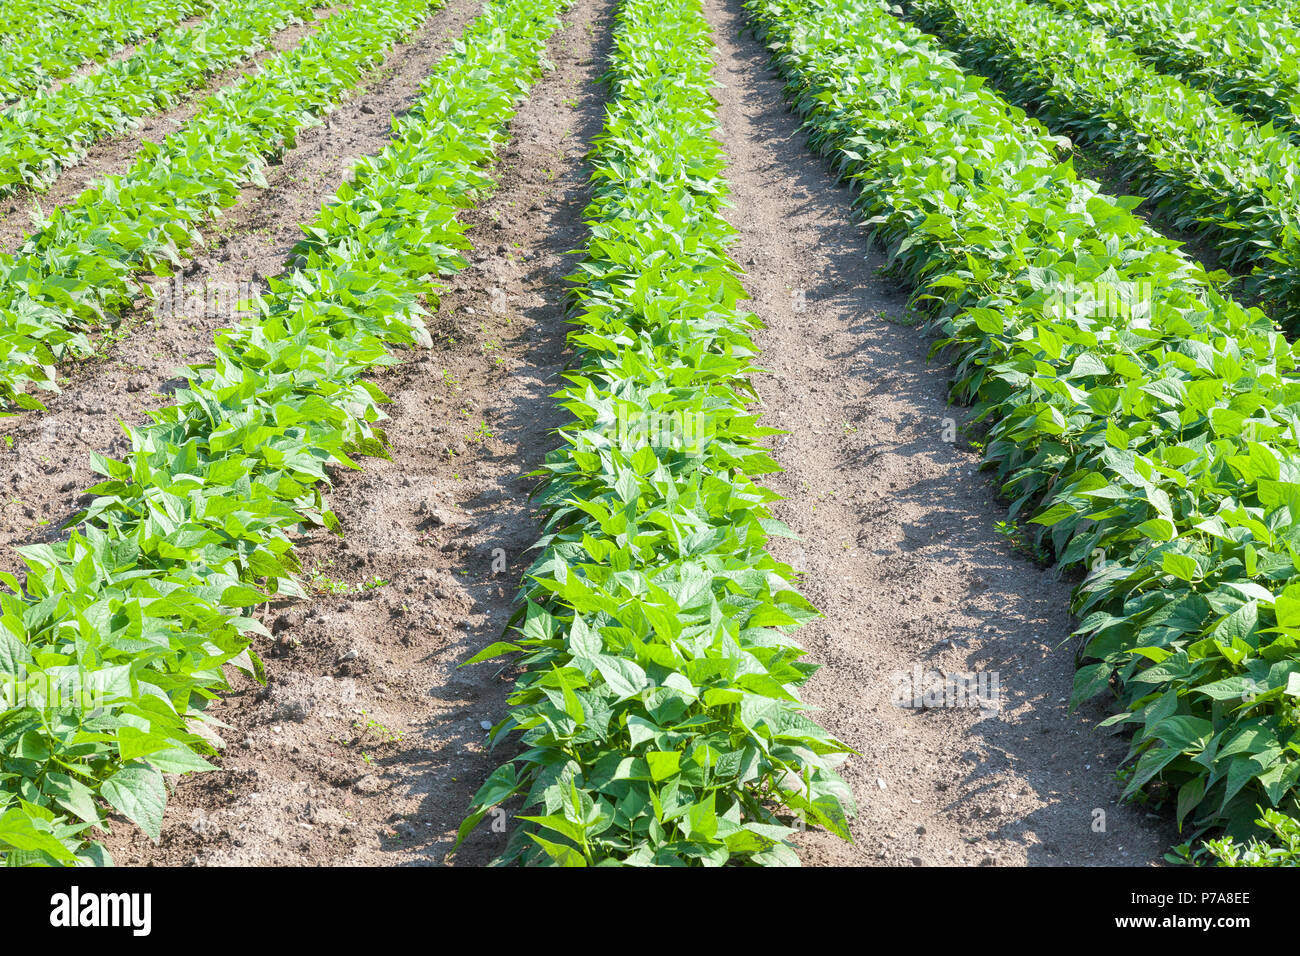 Green bean plants  growing in an agricultural field  in spring in receding rows. Farmland, crop,  agronomy, horticulture, vegetable garden - Stock Image